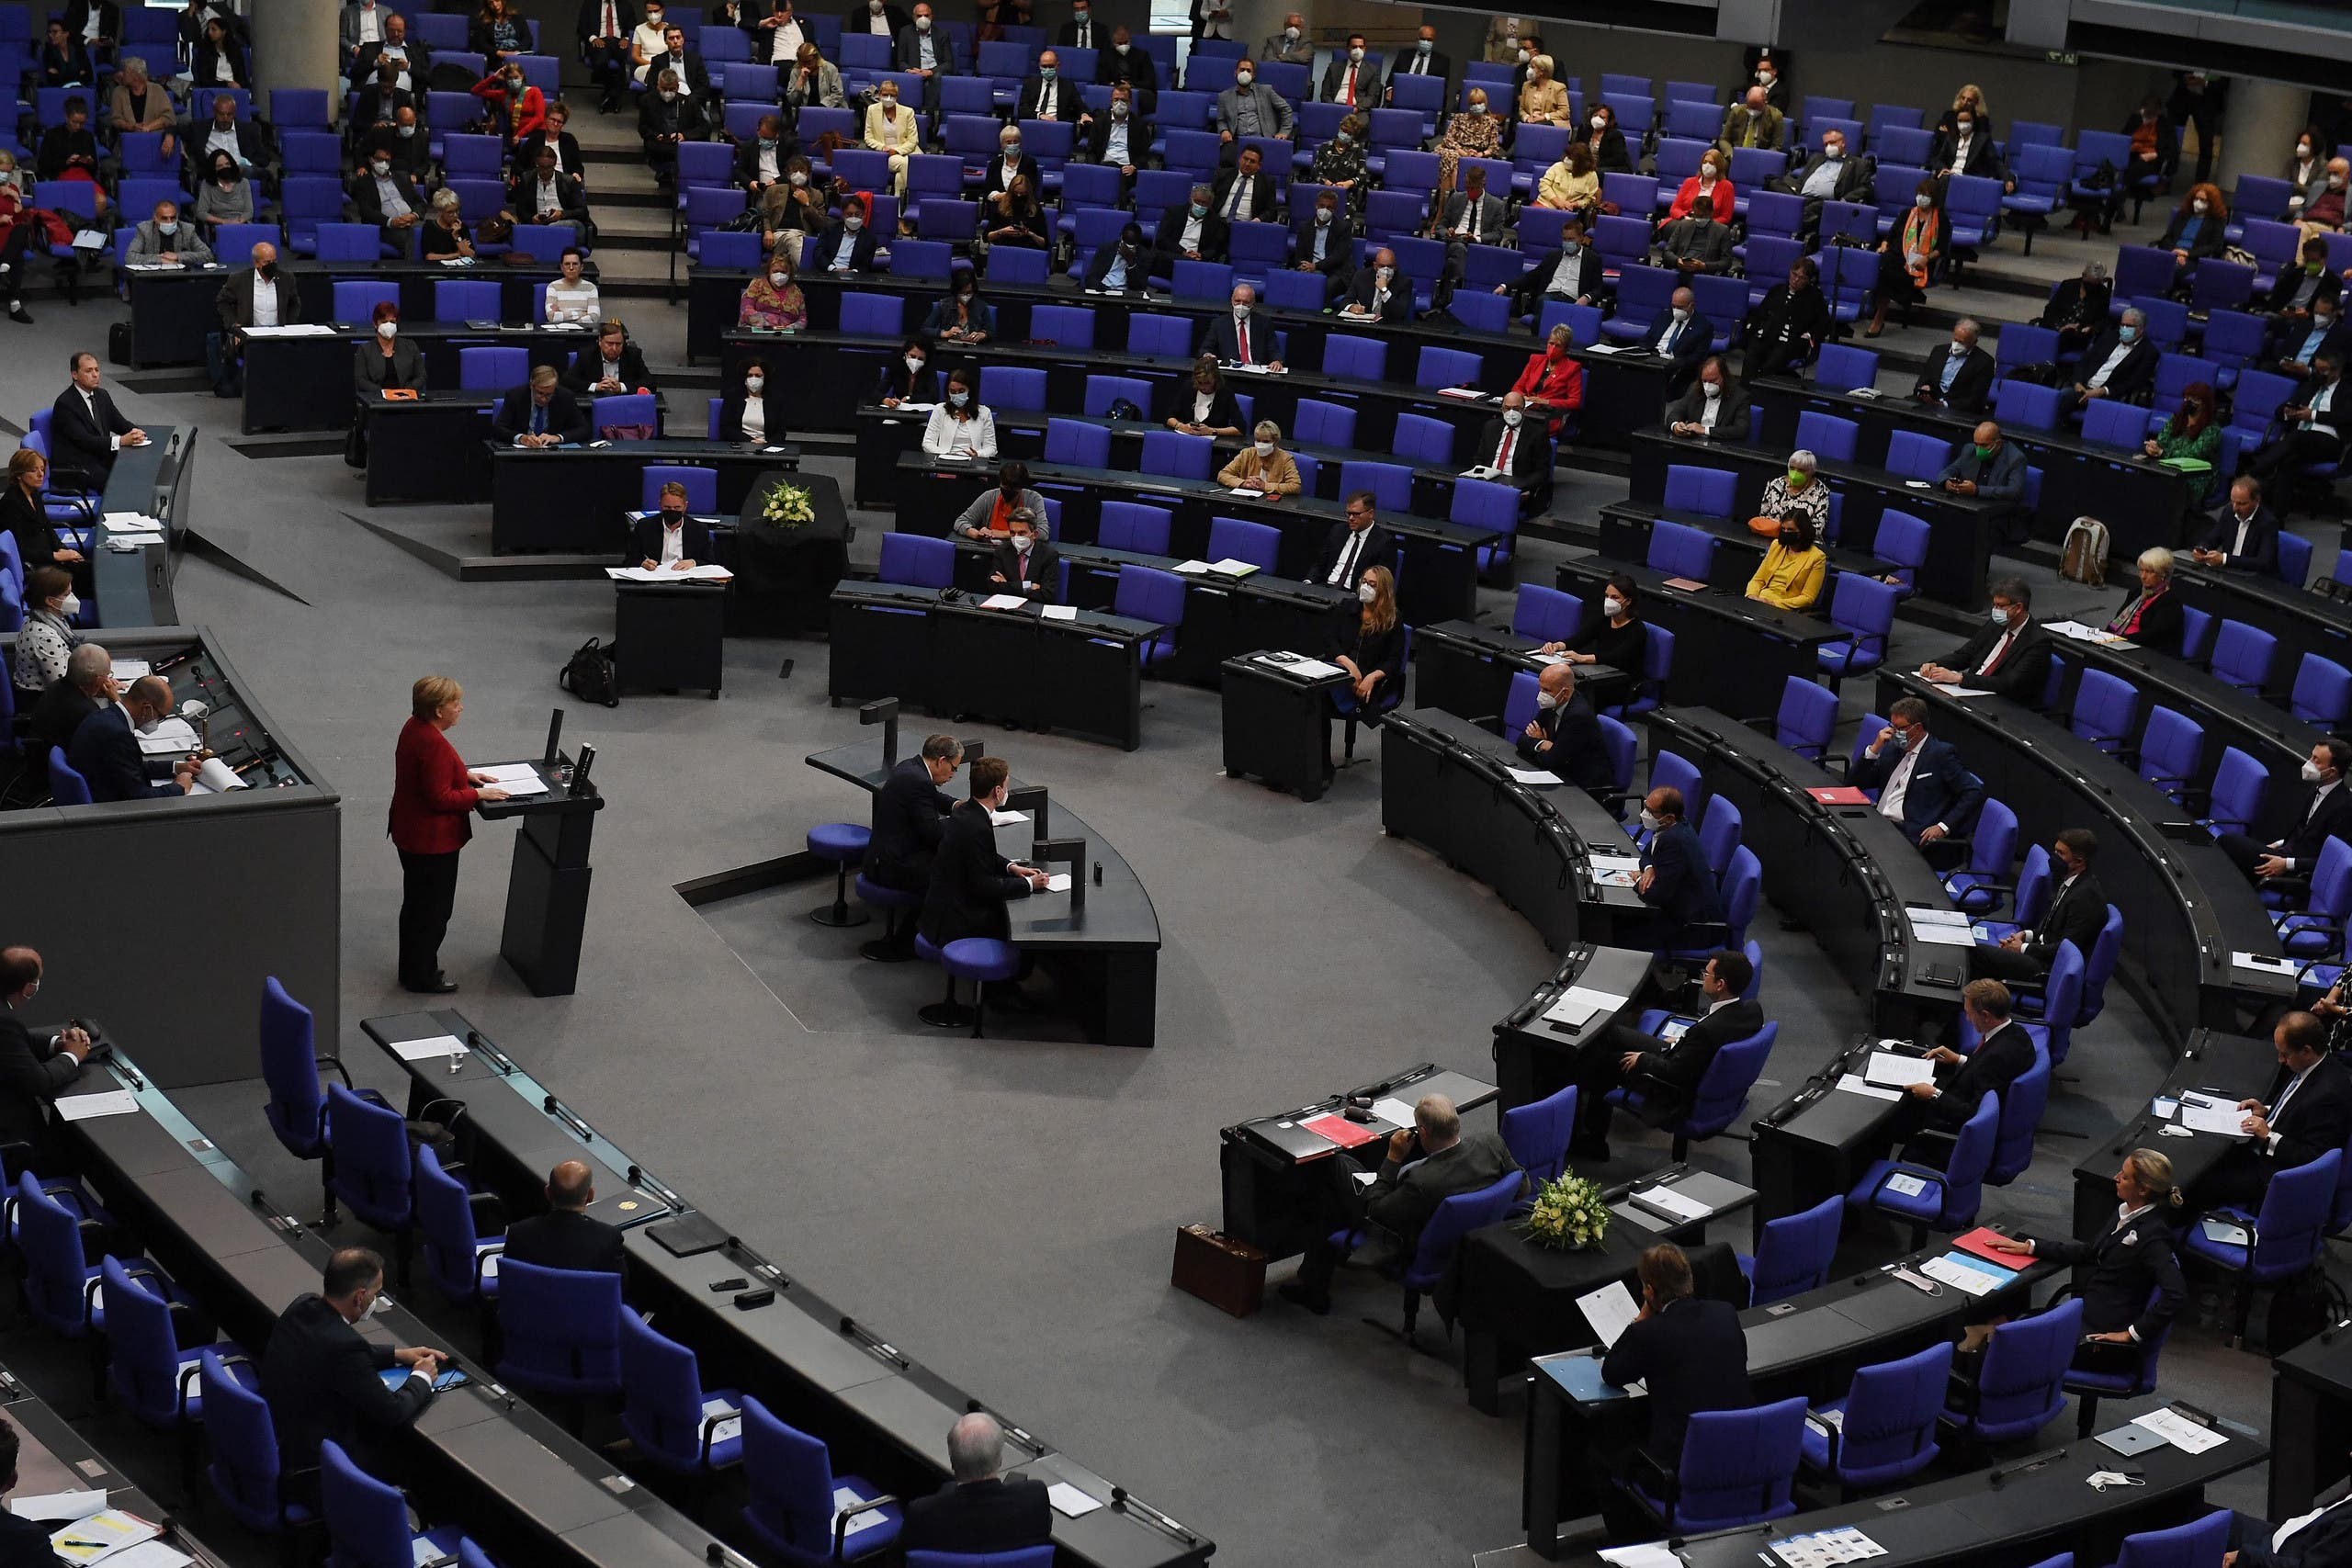 The Bundestag, the camera low of the German parliament